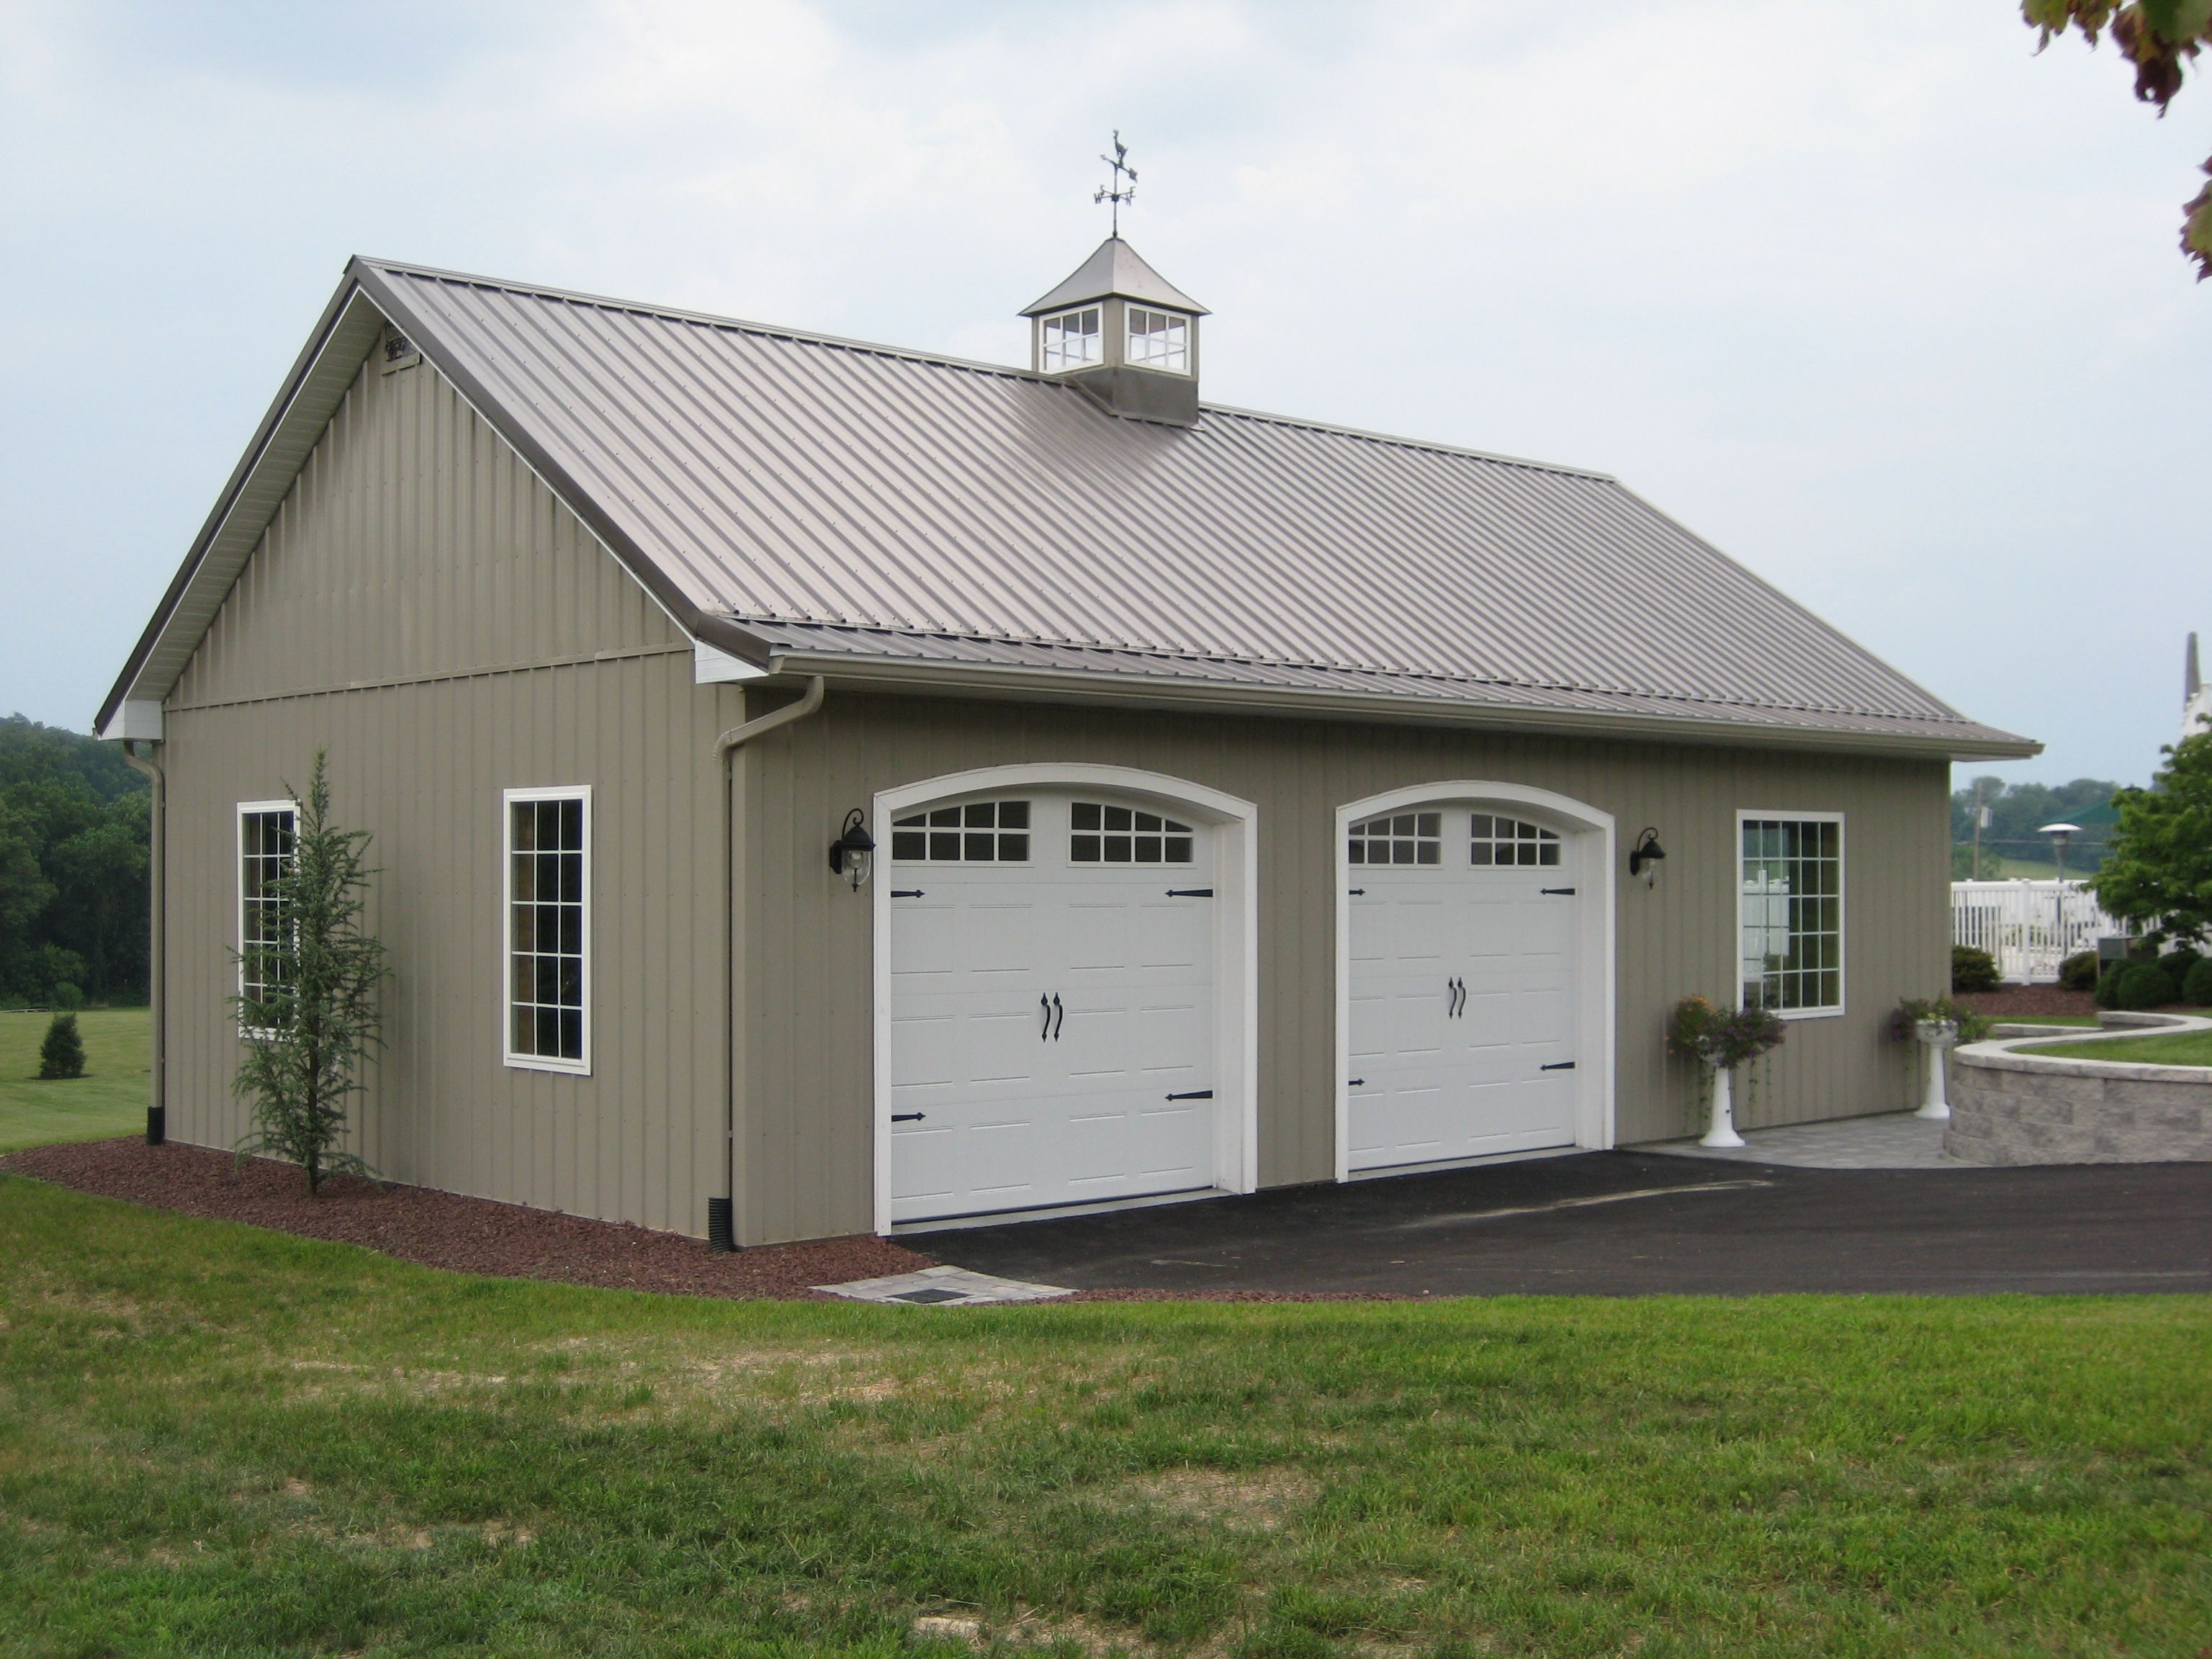 Best 25 pole barn garage ideas on pinterest pole barns for Steel pole house designs